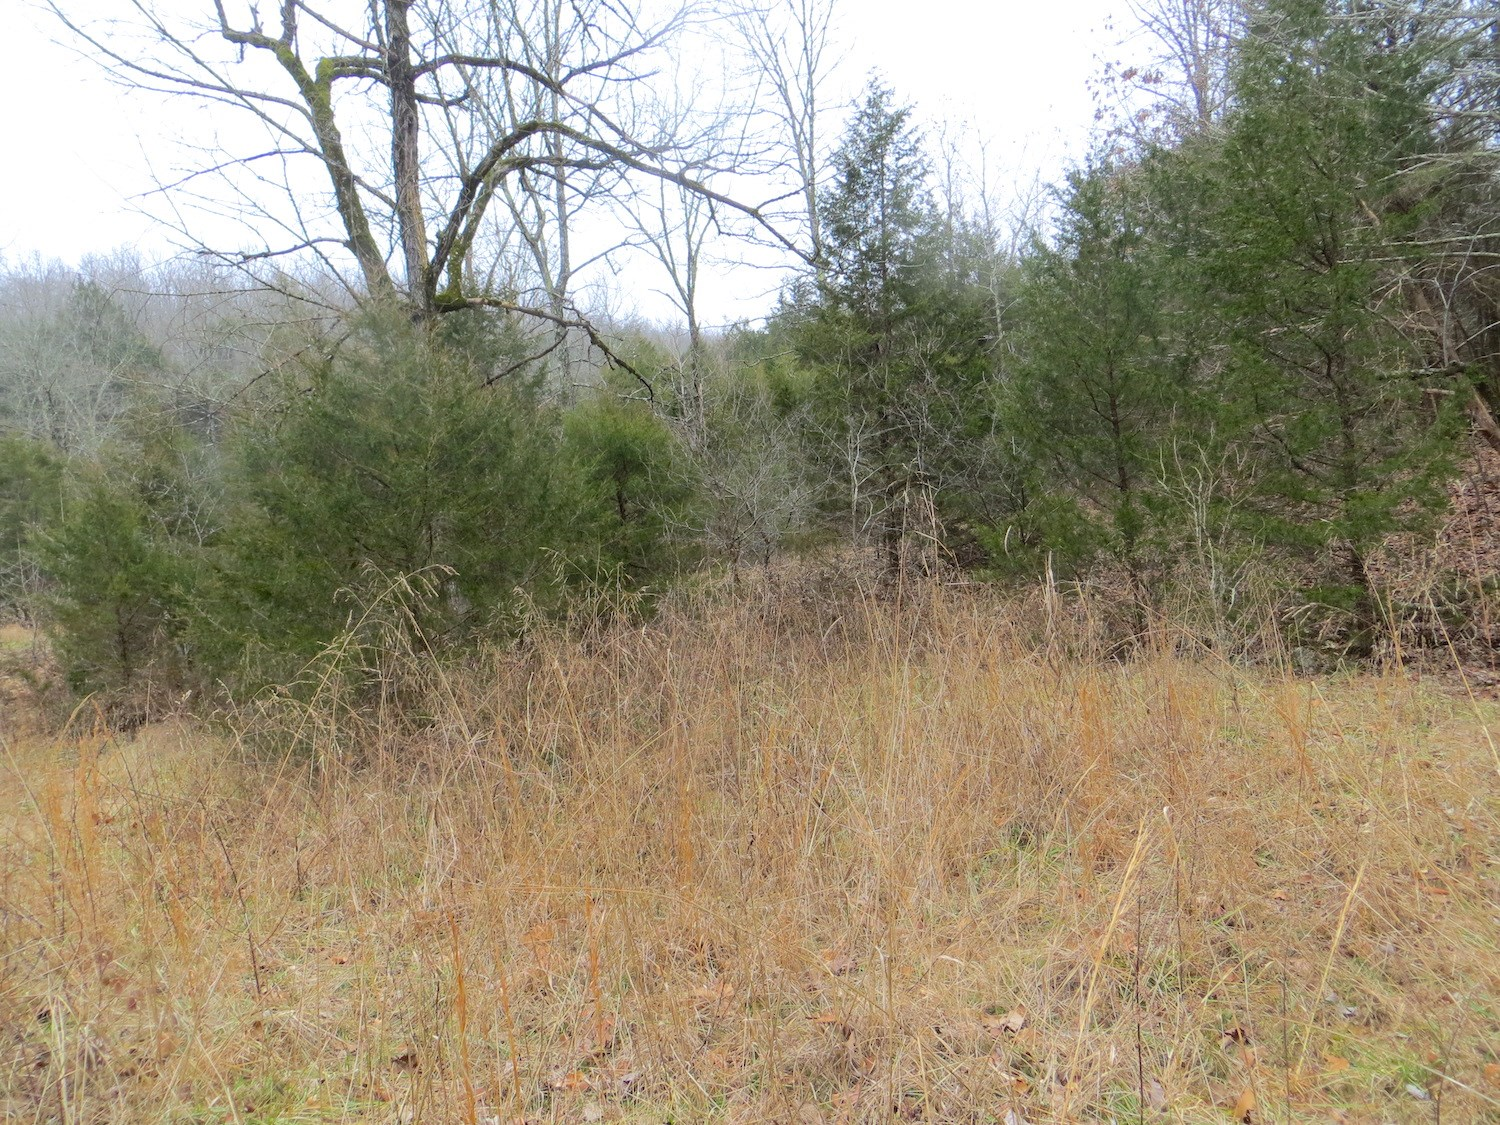 Acreage - Hunting Land for Sale in AR, Ozarks